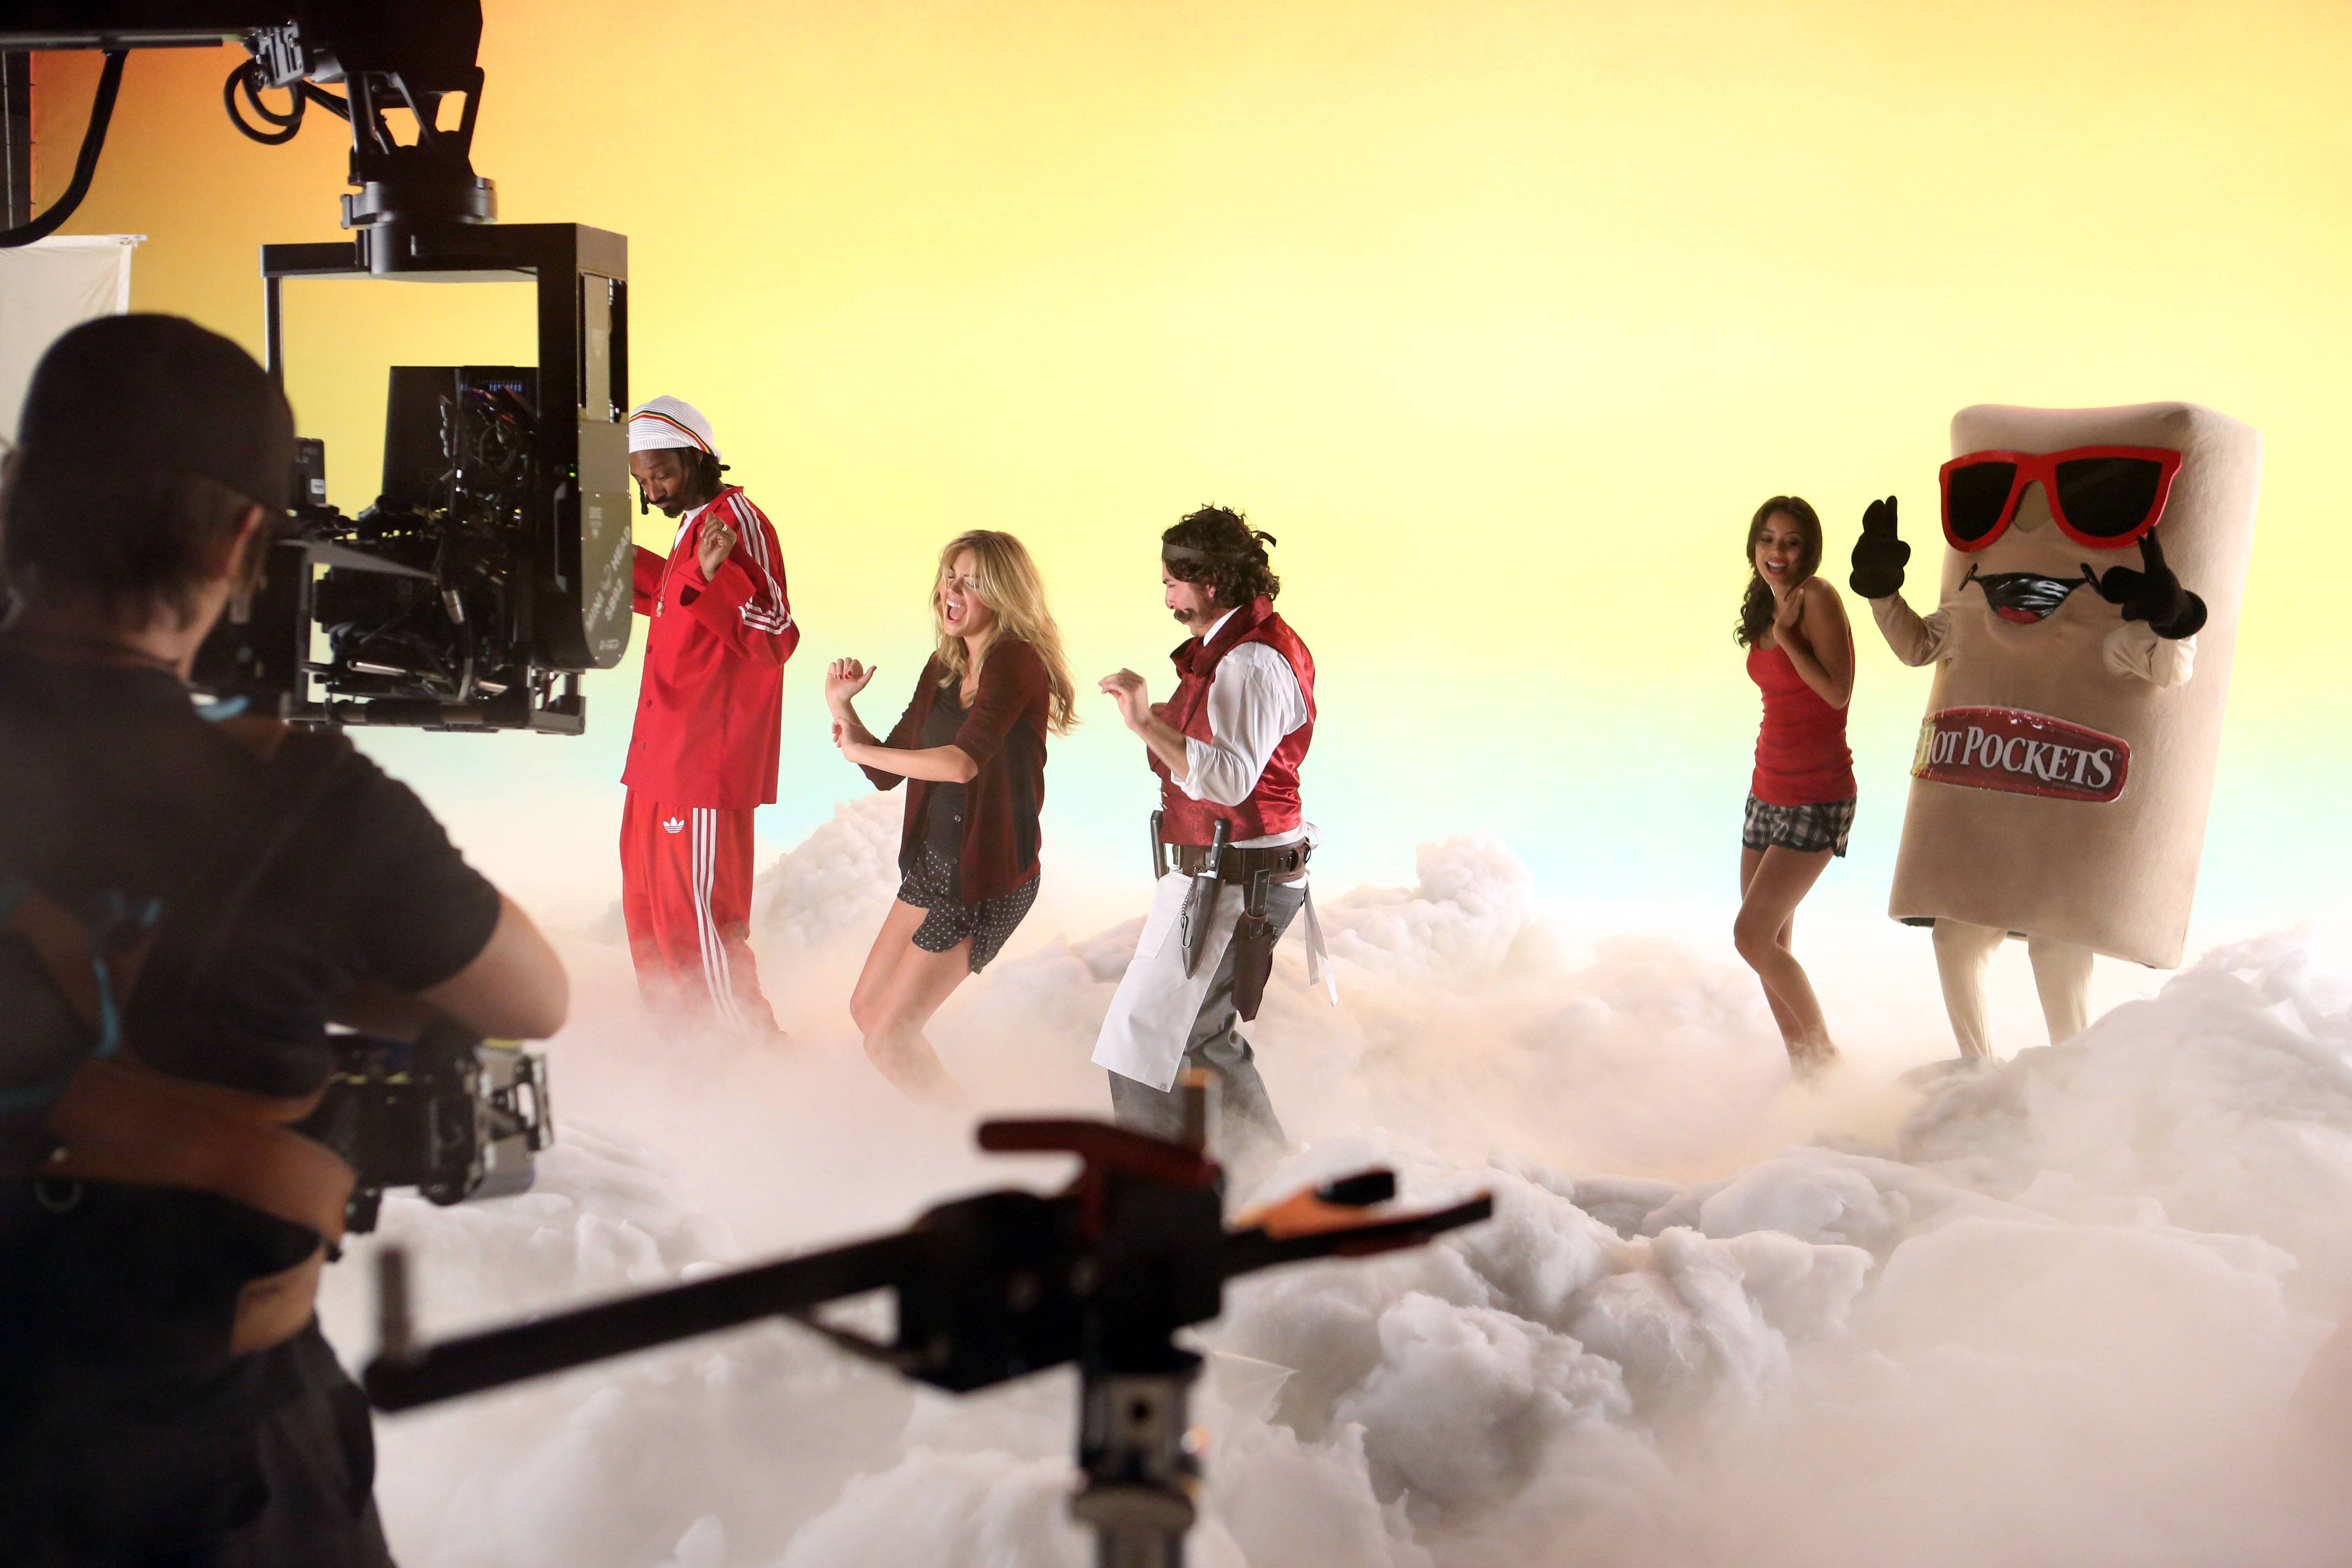 """In this image released by HOT POCKETS® brand sandwiches on Tuesday, Oct. 8, 2013 - Snoop Dogg, Kate Upton and Oliver Cooper are seen on the set of the """"You Got What I Eat"""" music video in Los Angeles; visit hotpockets.com/HotterPockets. (Photo: Business Wire)"""